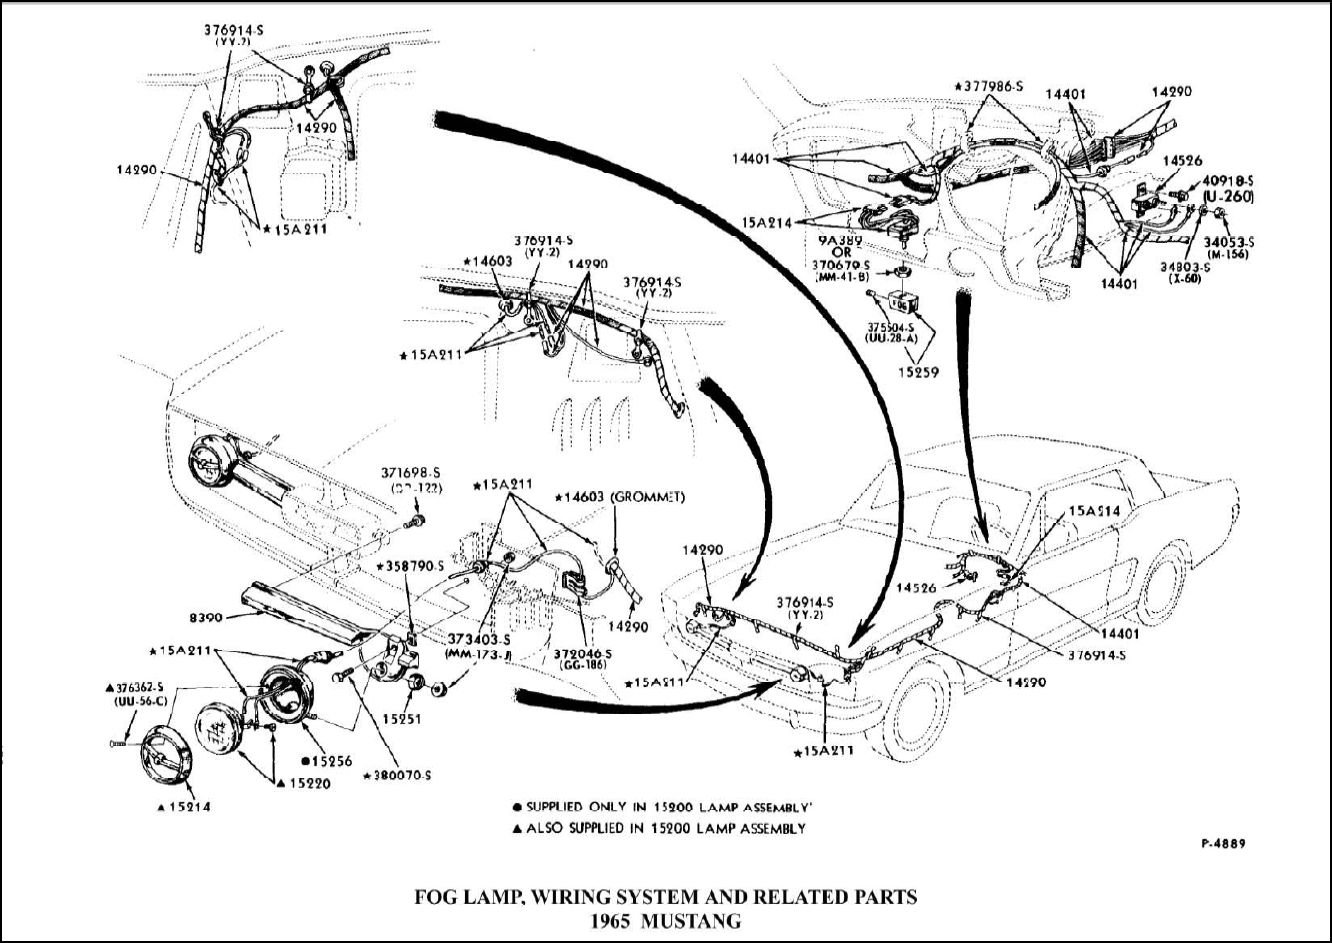 1965 Mustang Wiring Diagram : 27 Wiring Diagram Images